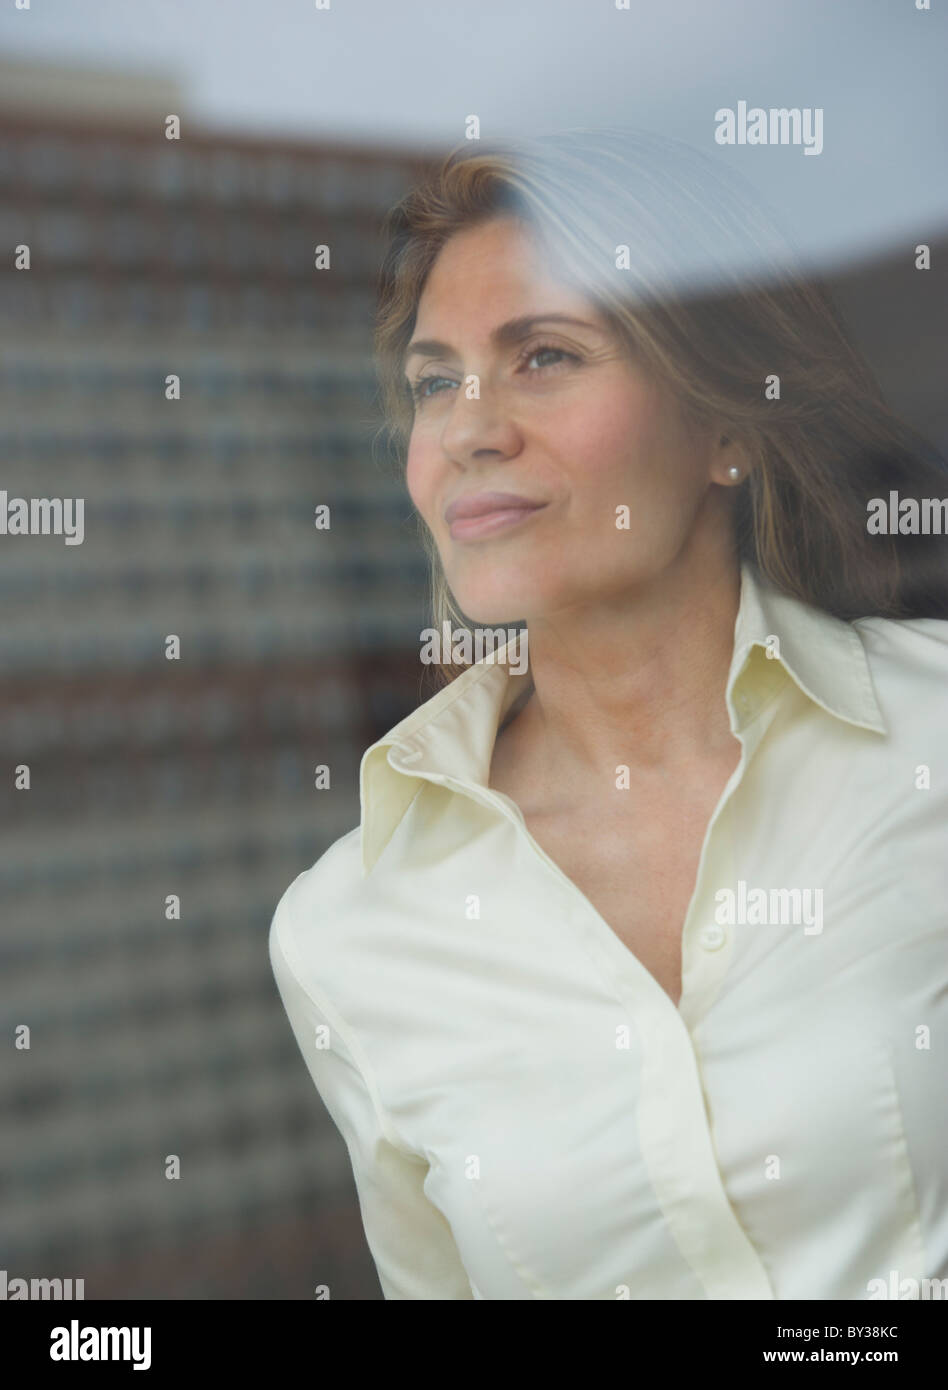 USA, New Jersey, Jersey City, Businesswoman looking through window - Stock Image